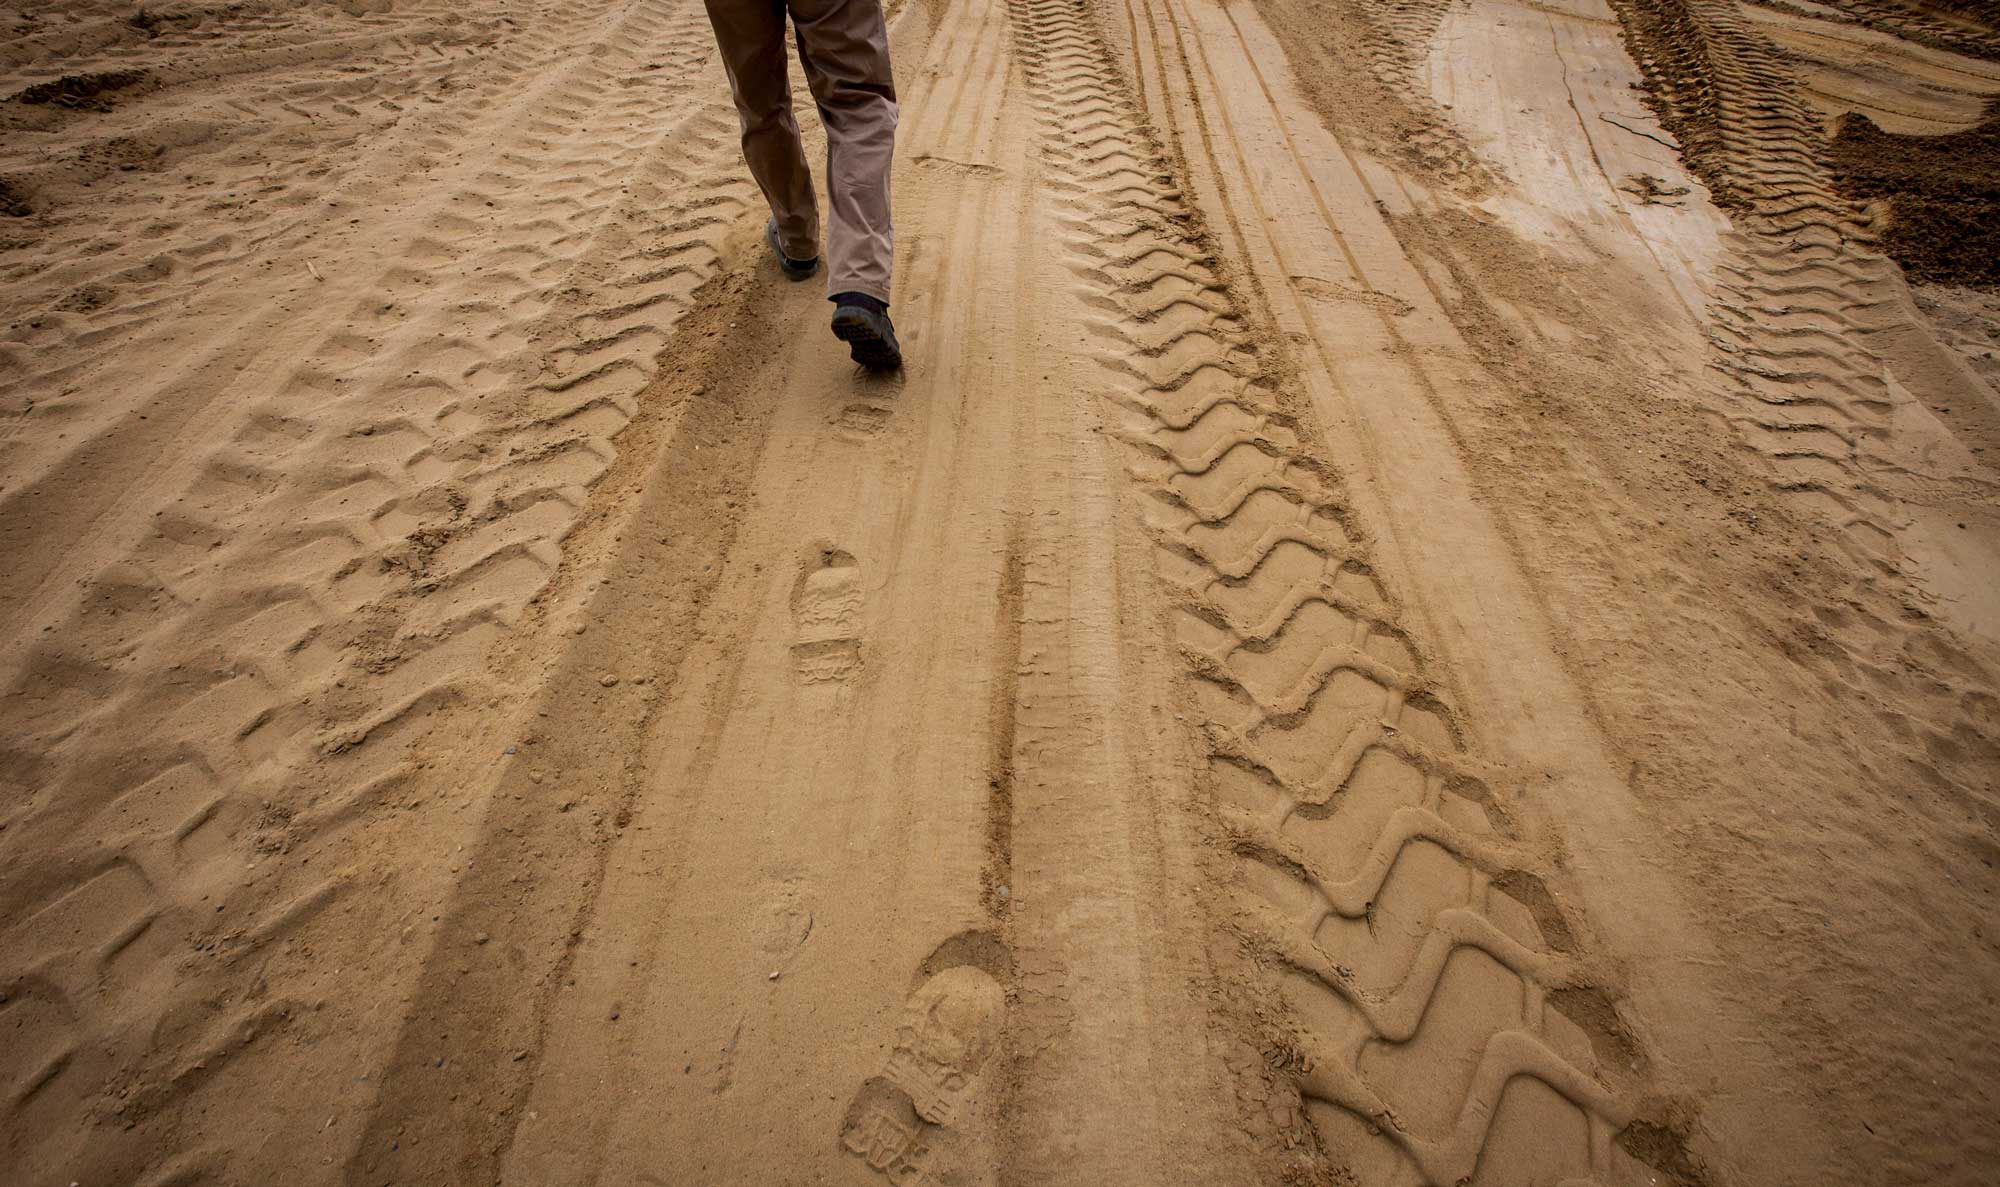 An RBV Contracting employee walks in the dirt, leaving footprints alongside the tire marks from construction equipment.